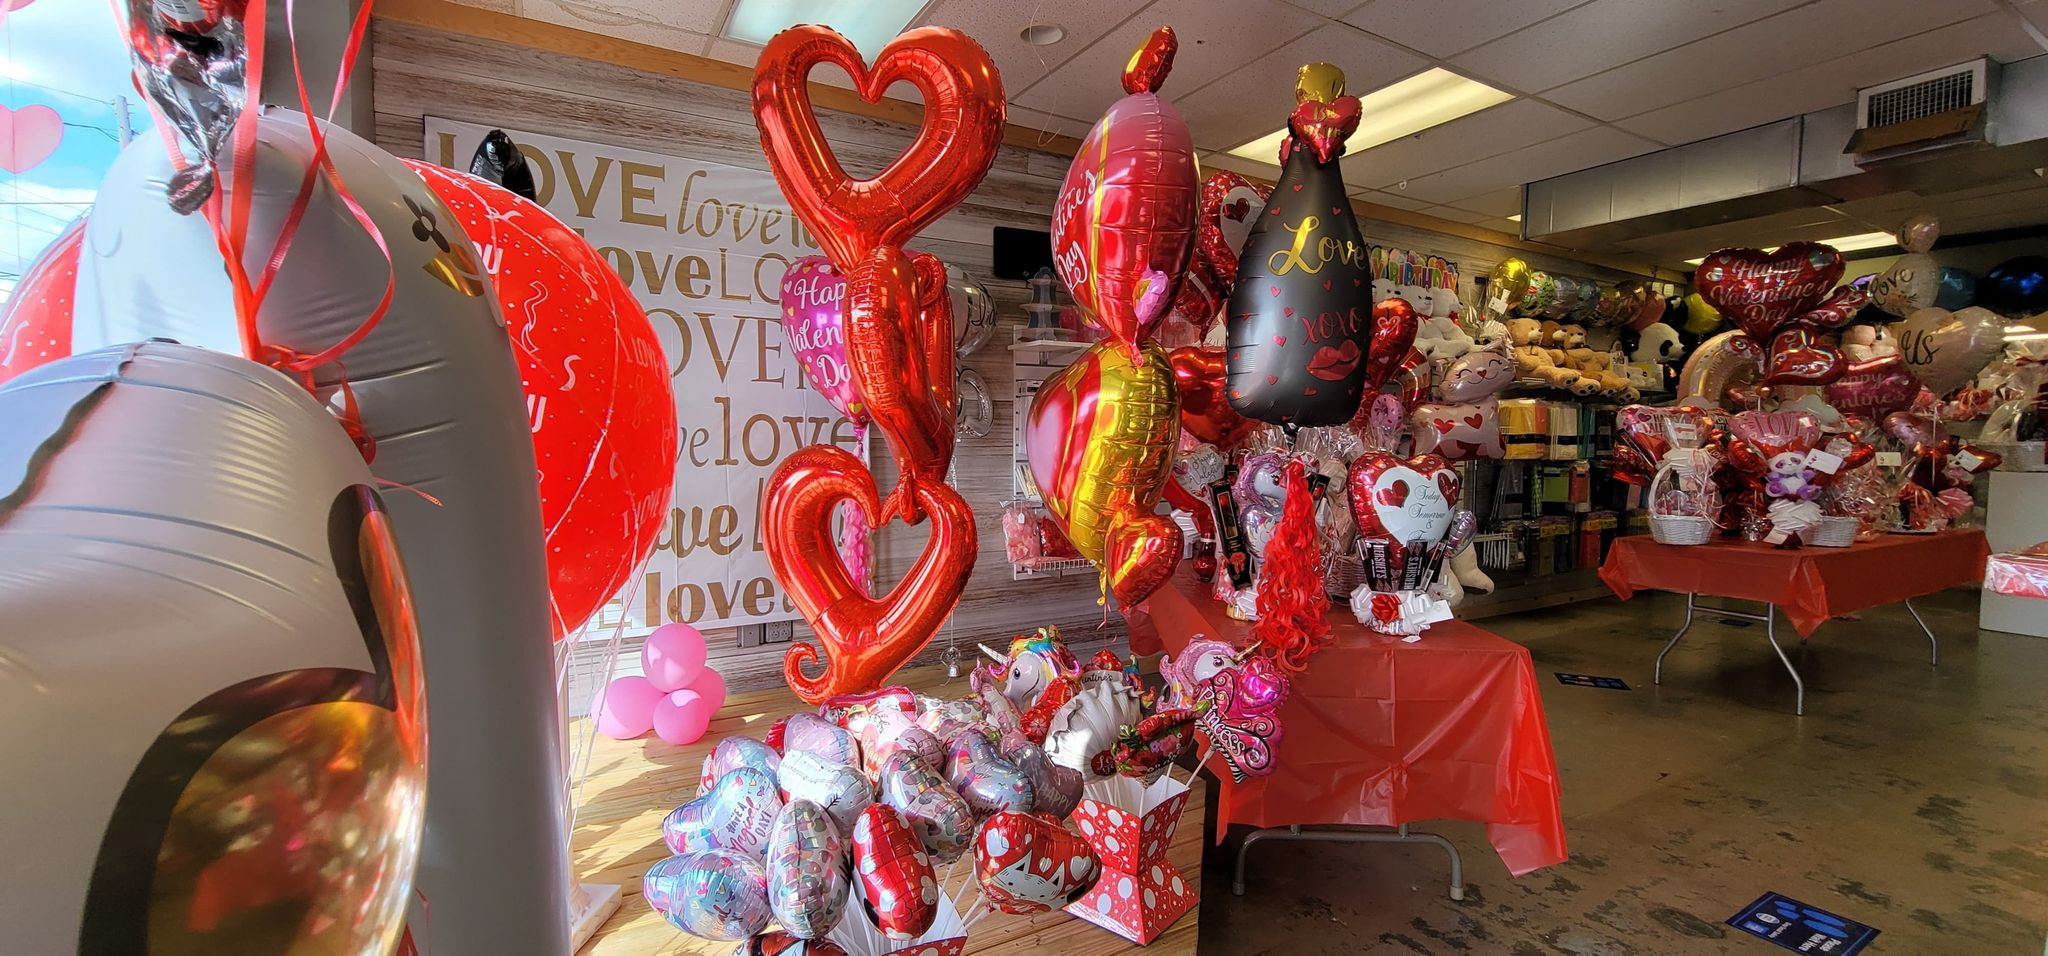 It's a Party Balloon and Party Supplier in Trussville: Family-owned, family-oriented